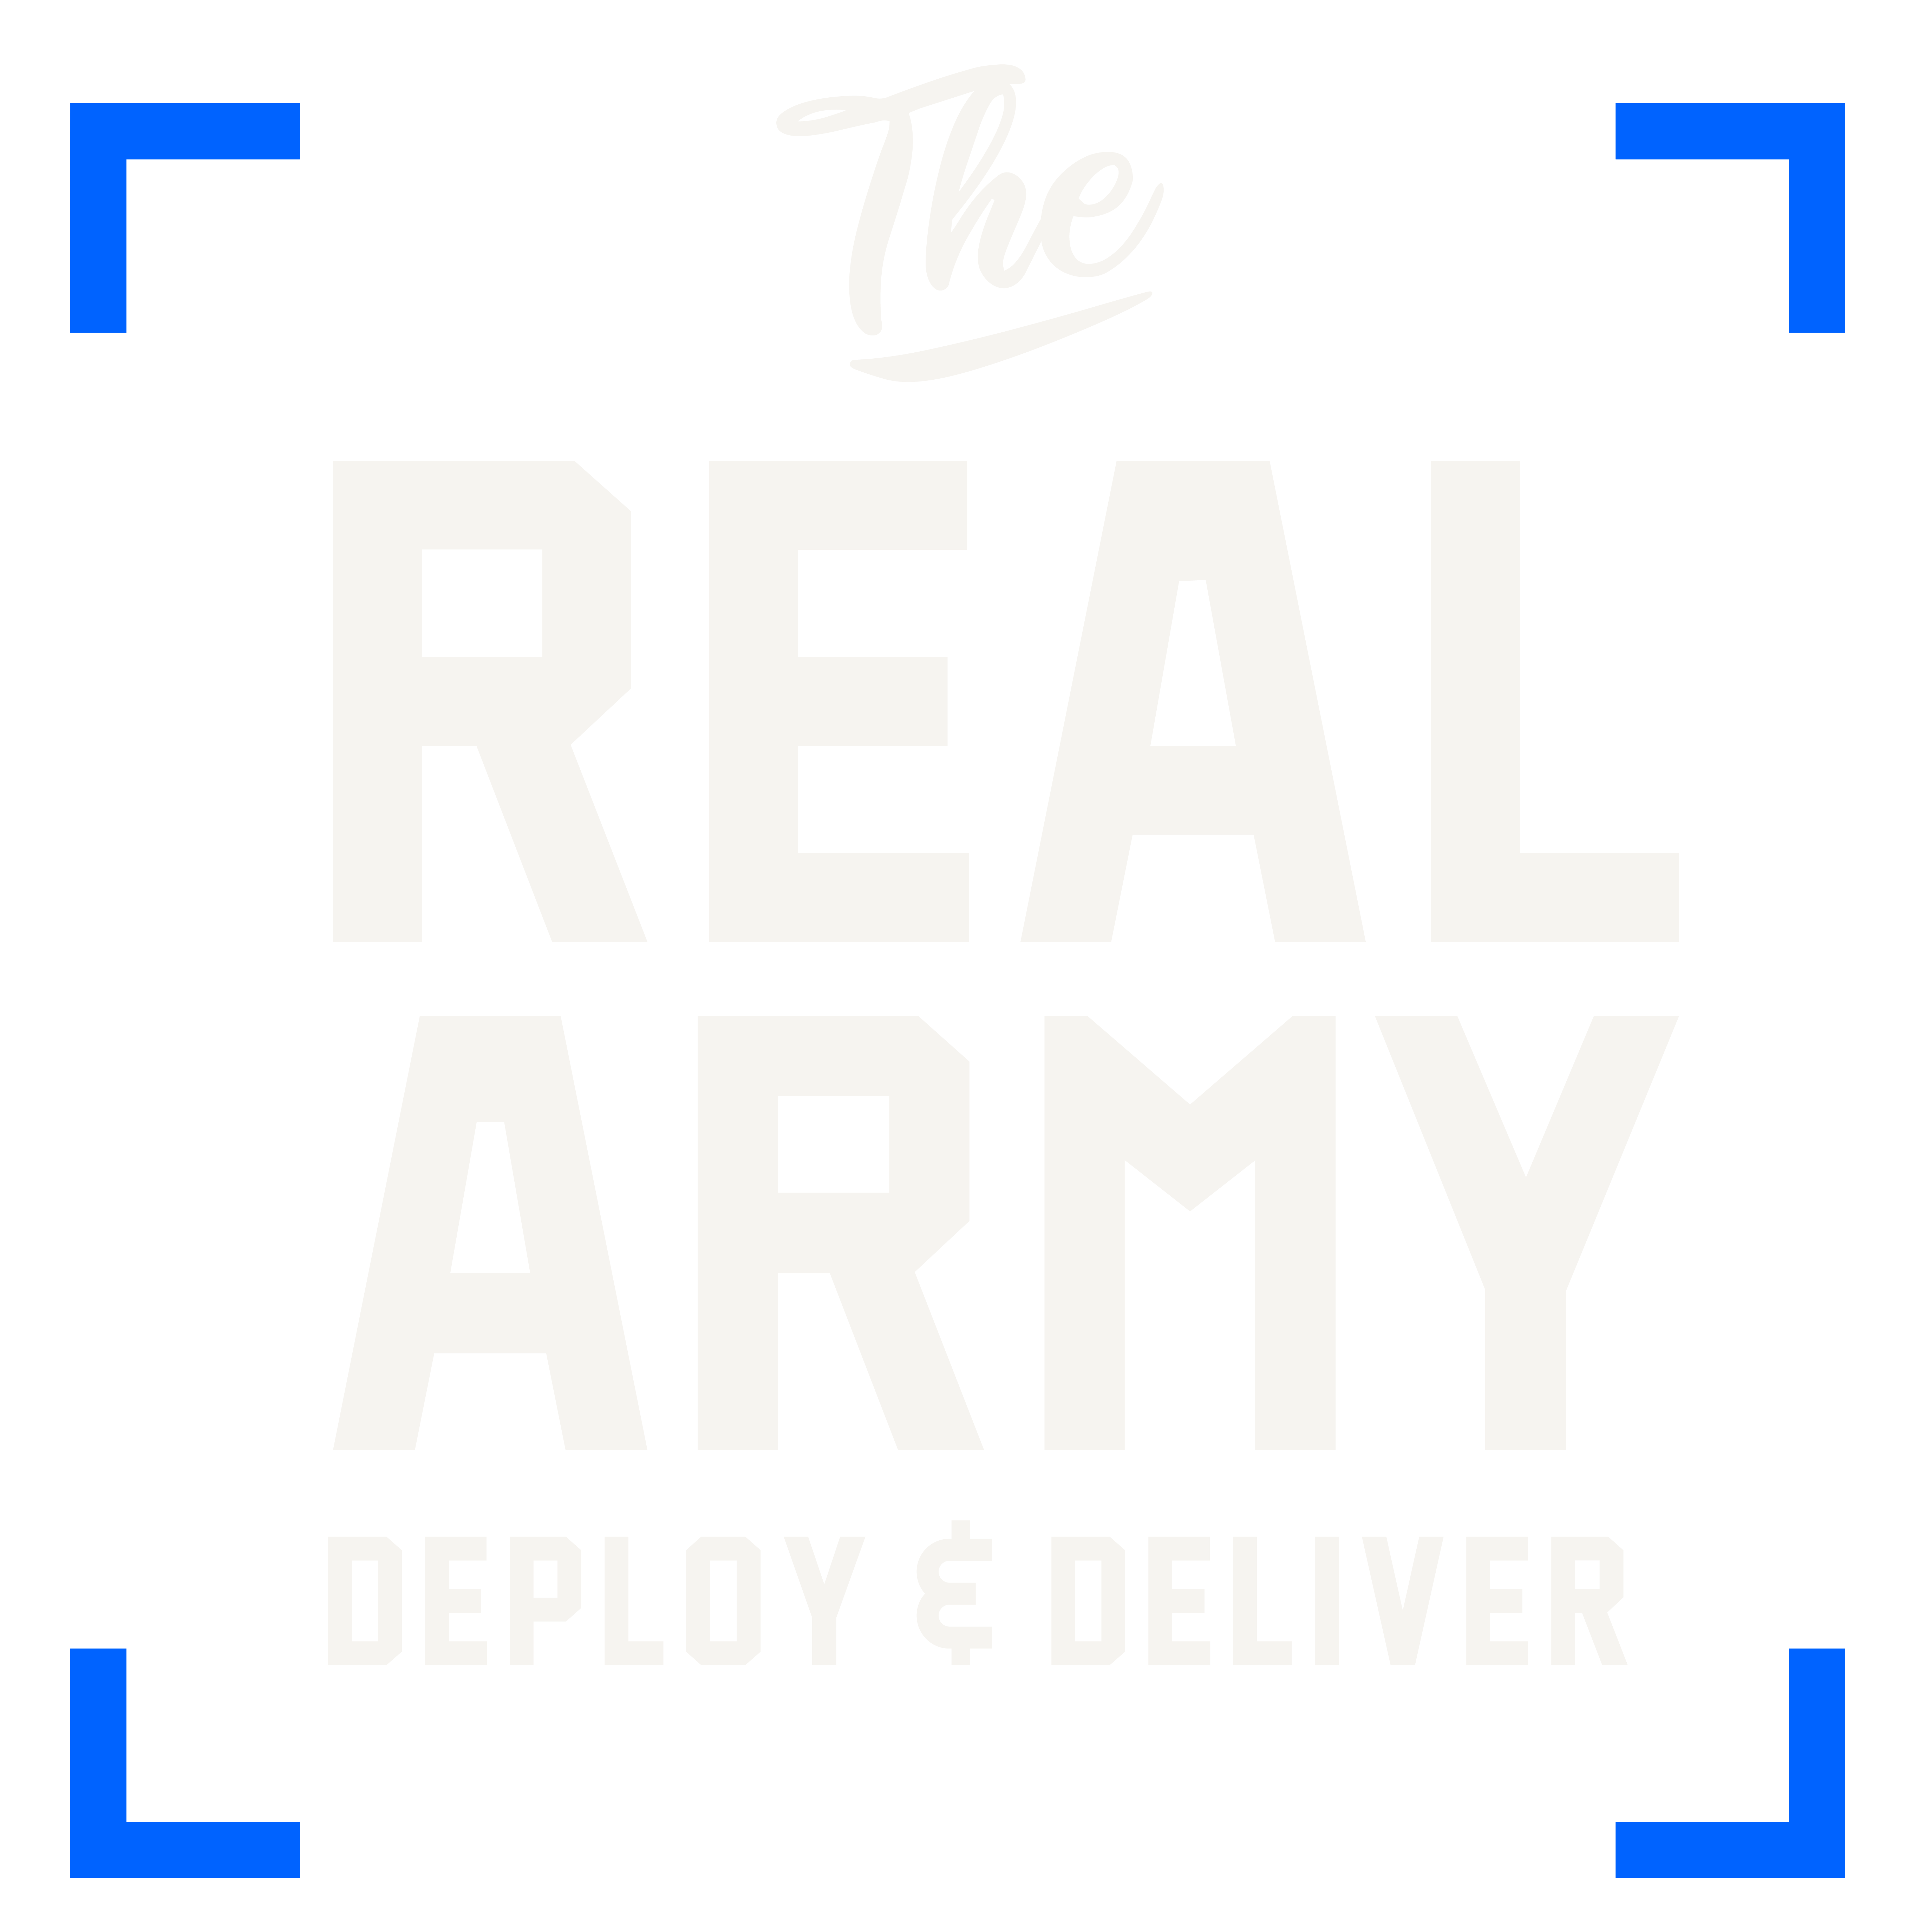 TheRealArmy_White_Tag - Copy